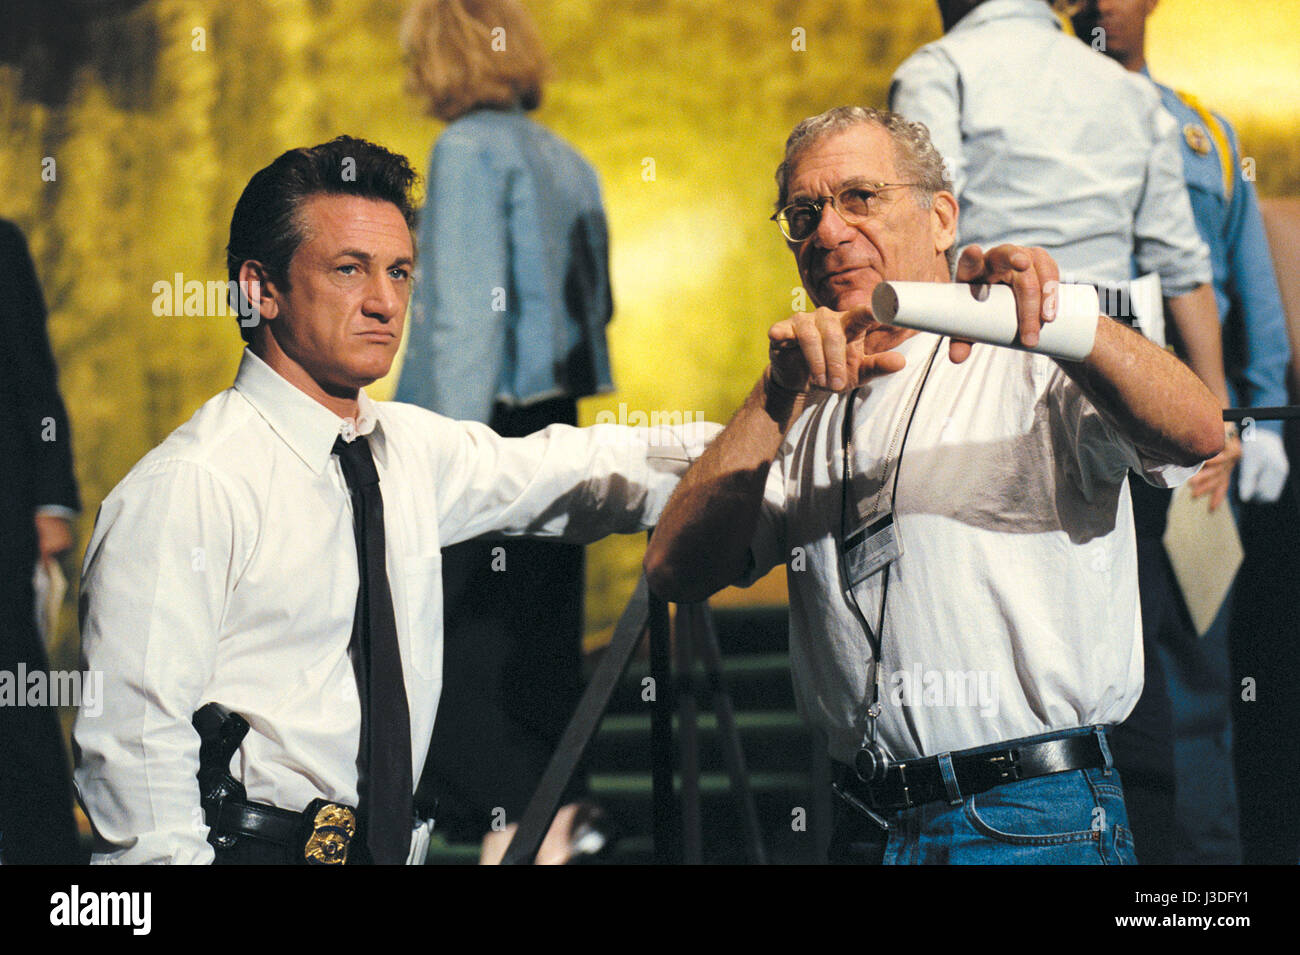 The Interpreter Year : 2005 USA / UK Director : Sydney Pollack Sydney Pollack, Sean Penn Shooting picture - Stock Image